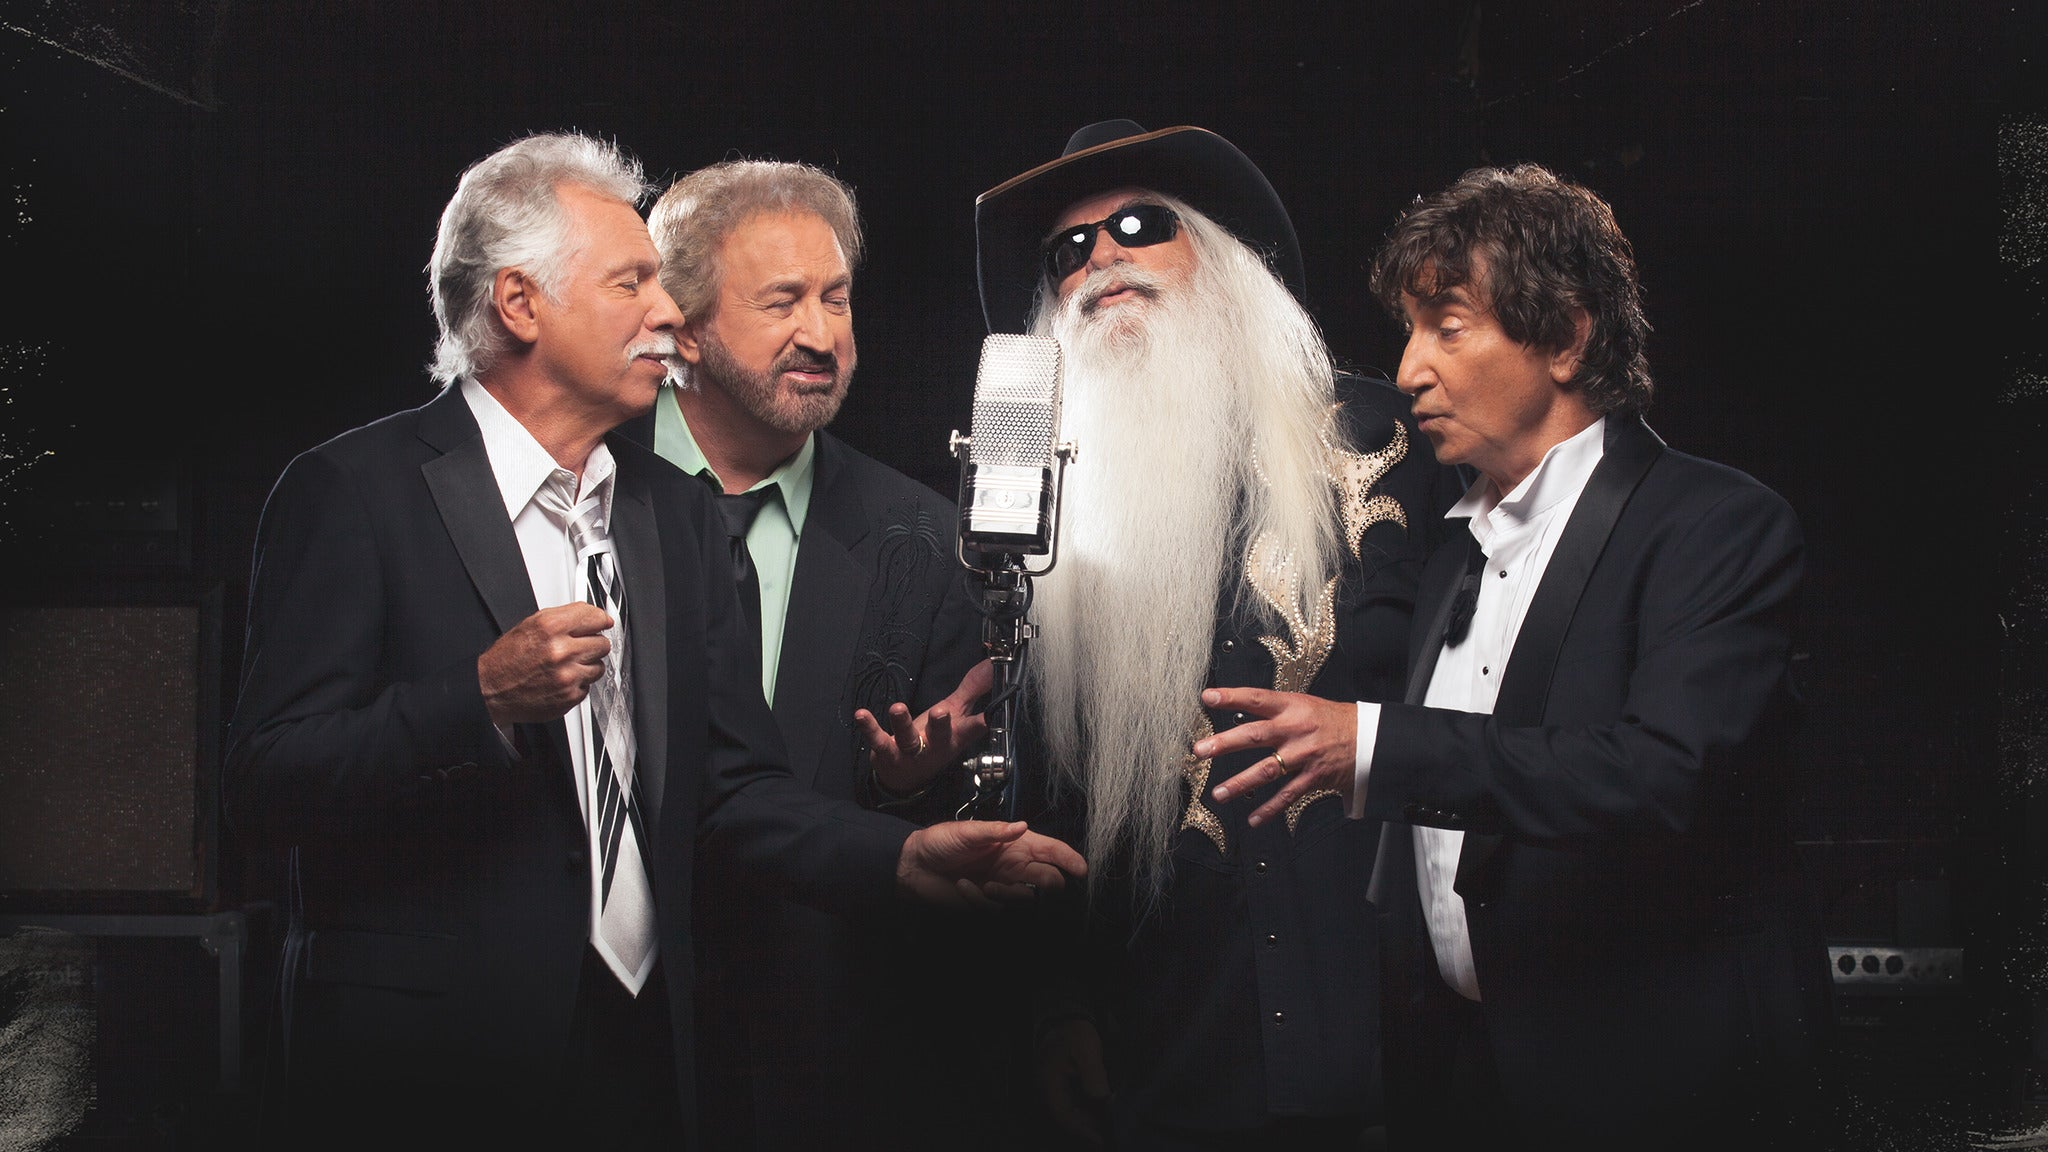 Oak Ridge Boys at The Mansion - MO